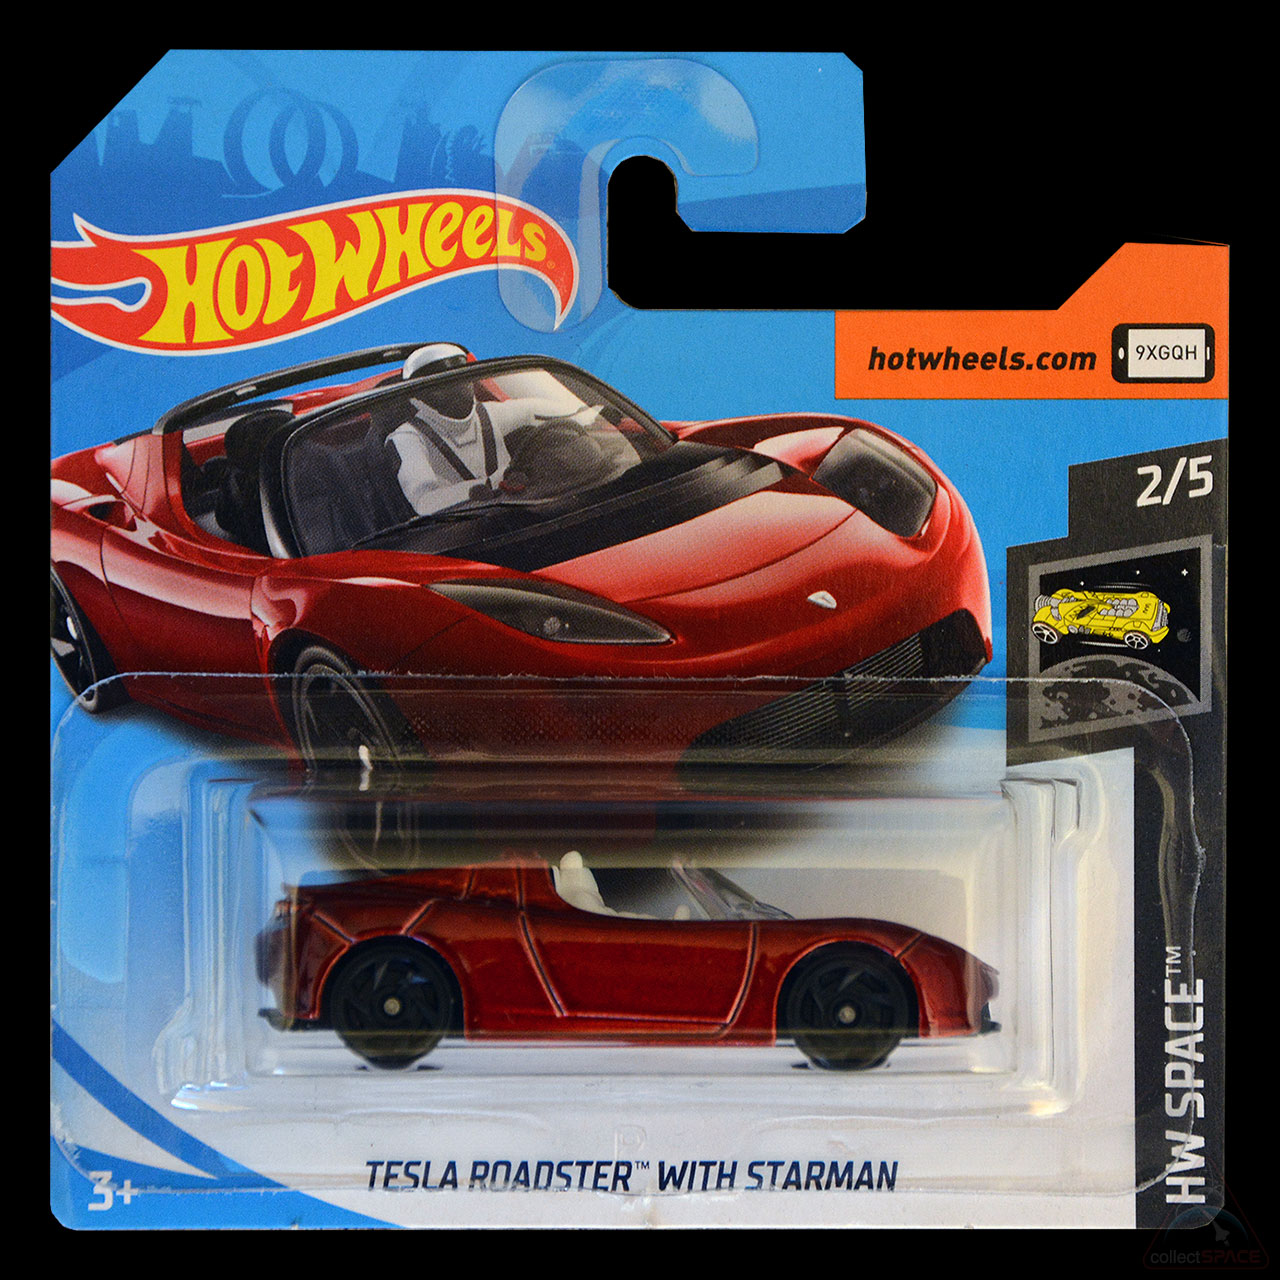 'Starman' Aboard: Hot Wheels Toy Features SpaceX